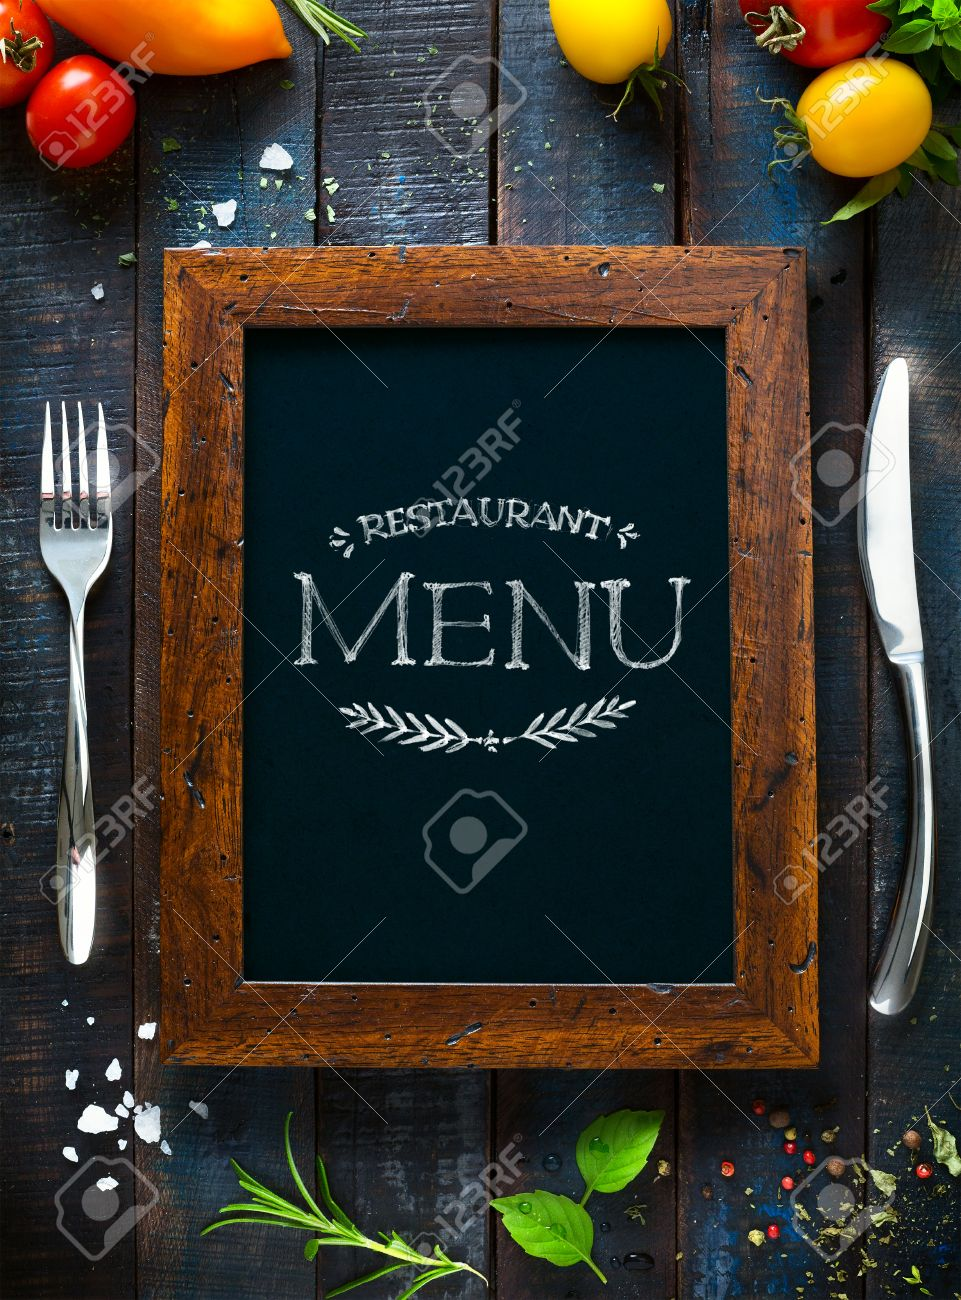 Breakfast Menu Images Pictures Royalty Free Breakfast – Breakfast Menu Template